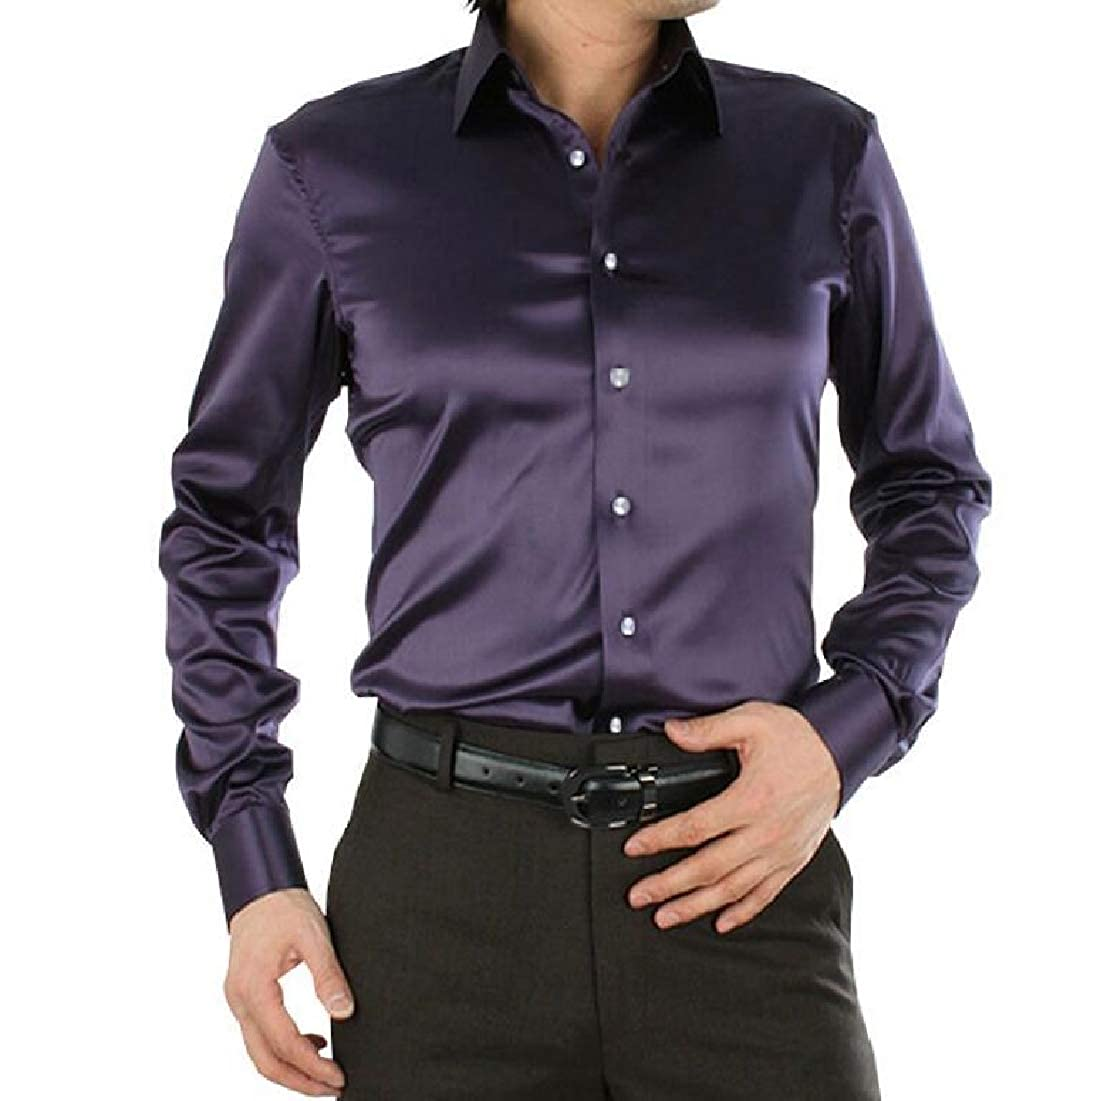 UUYUK Men Long Sleeve Solid Color Stretchy Satin Slim Button Down Shirts